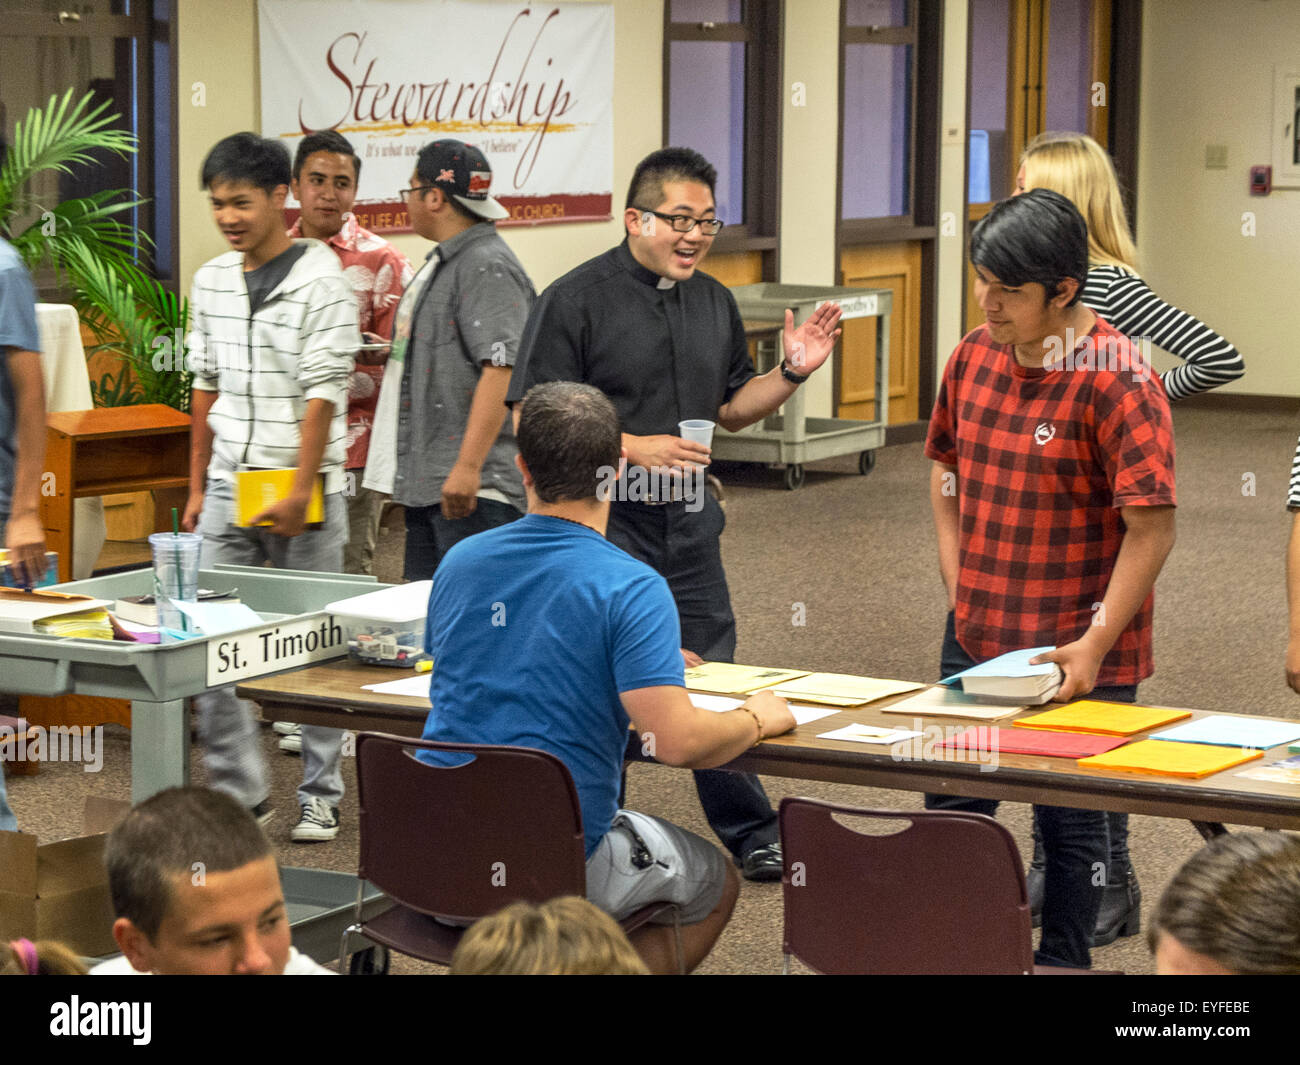 A Vietnamese American priest talks encouragingly to a teenager at a confirmation preparation class in the parish - Stock Image